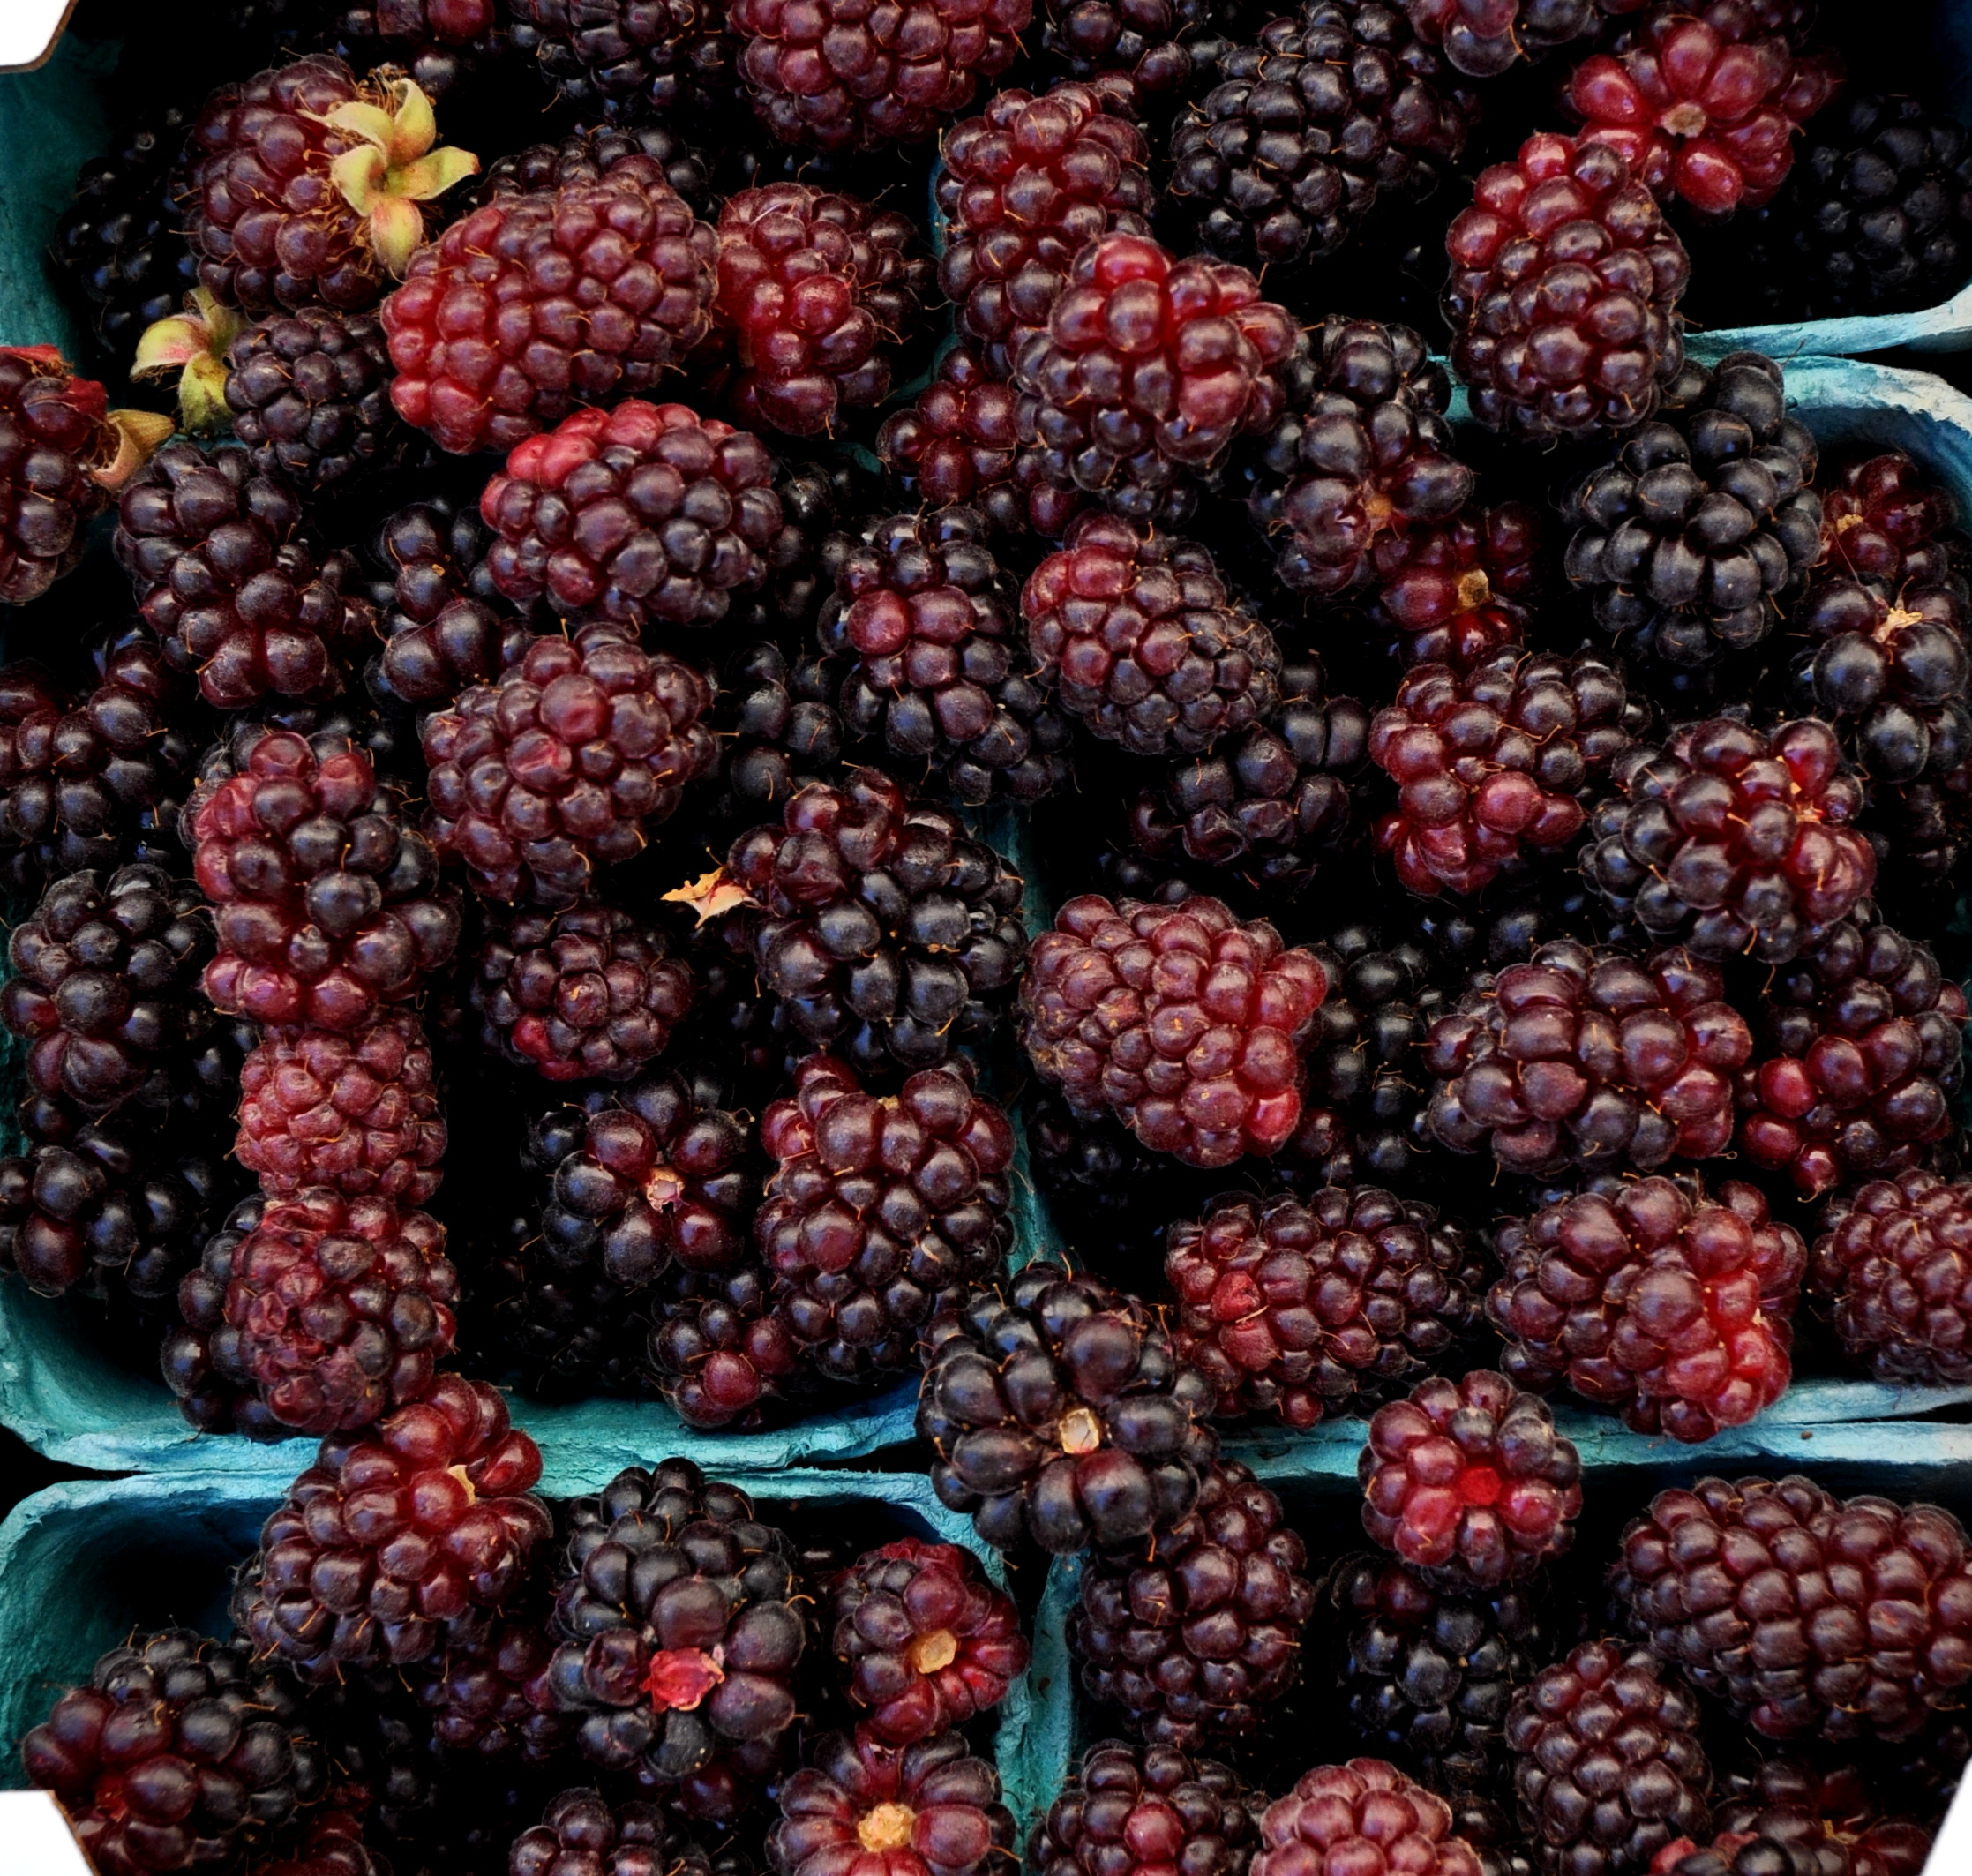 Boysenberries from Jessie's Berries. Photo copyright 2013 by Zachary D. Lyons.